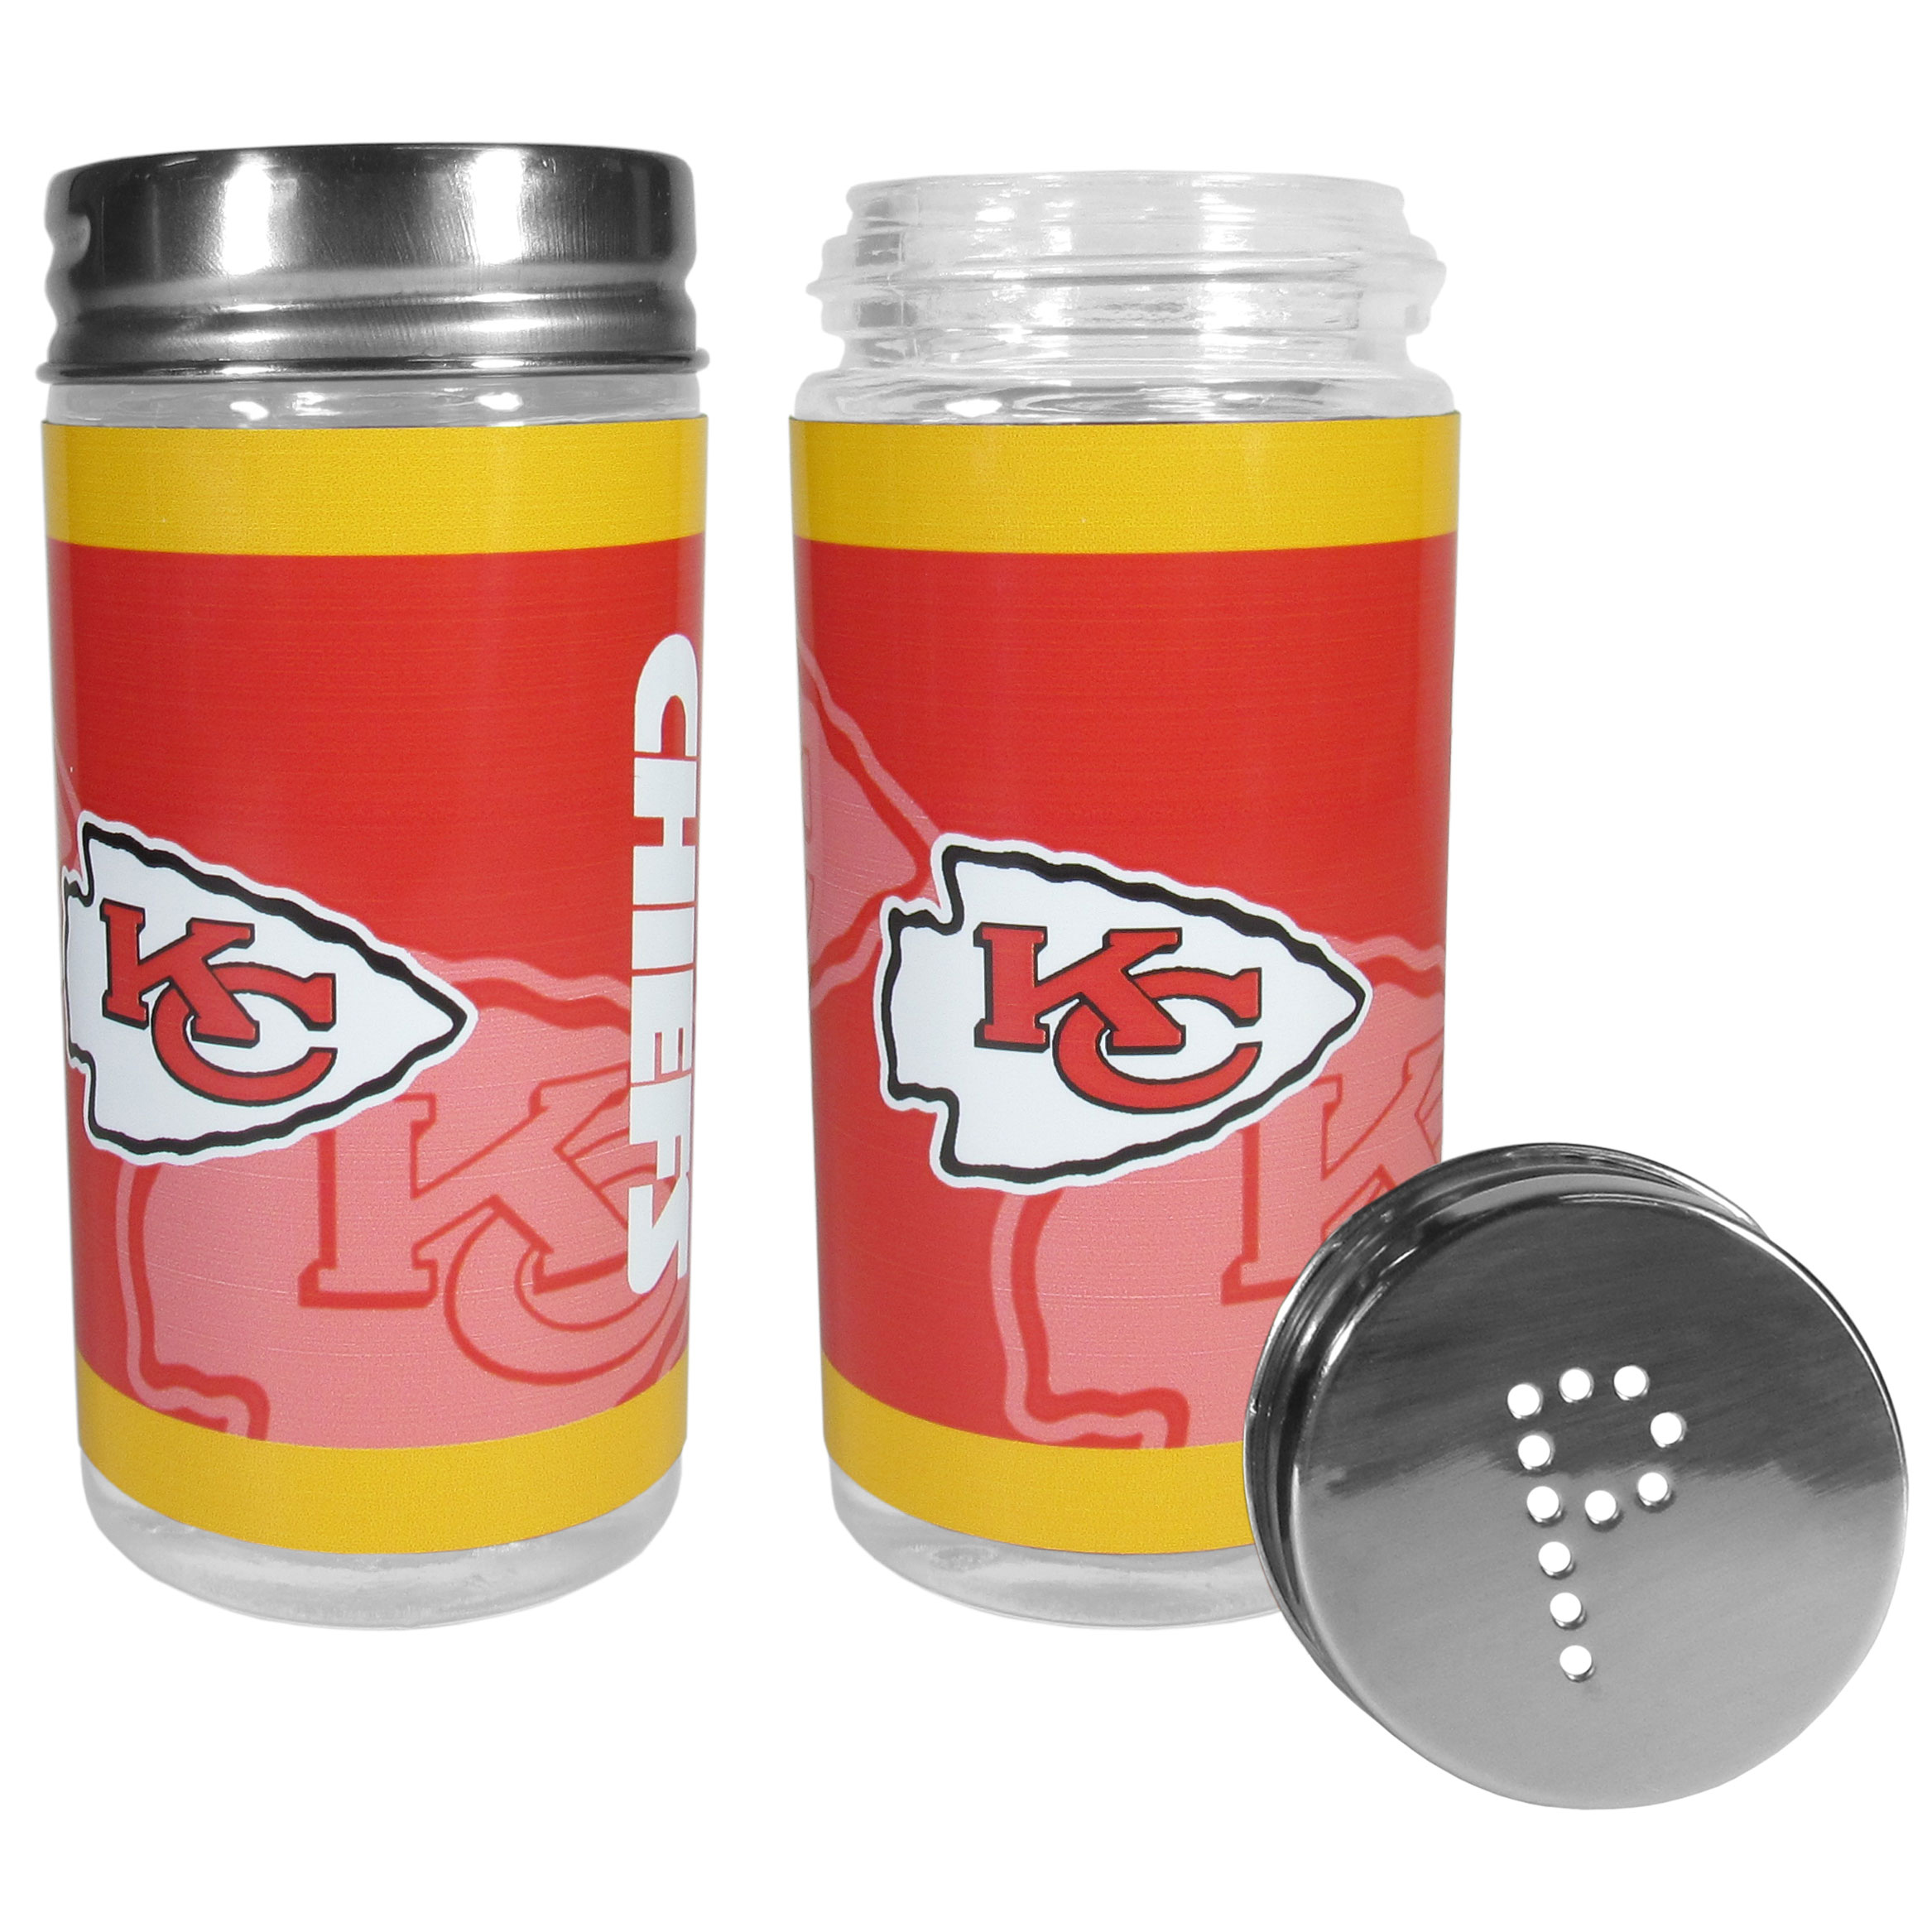 Kansas City Chiefs Tailgater Salt and Pepper Shakers - No tailgate party is complete without your Kansas City Chiefs salt & pepper shakers featuring bright team graphics. The glass shakers are 3.75 inches tall and the screw top lids have holes that spell out P and S. These team shakers are a great grill accessory whether you are barbecuing on the patio, picnicing or having a game day party.